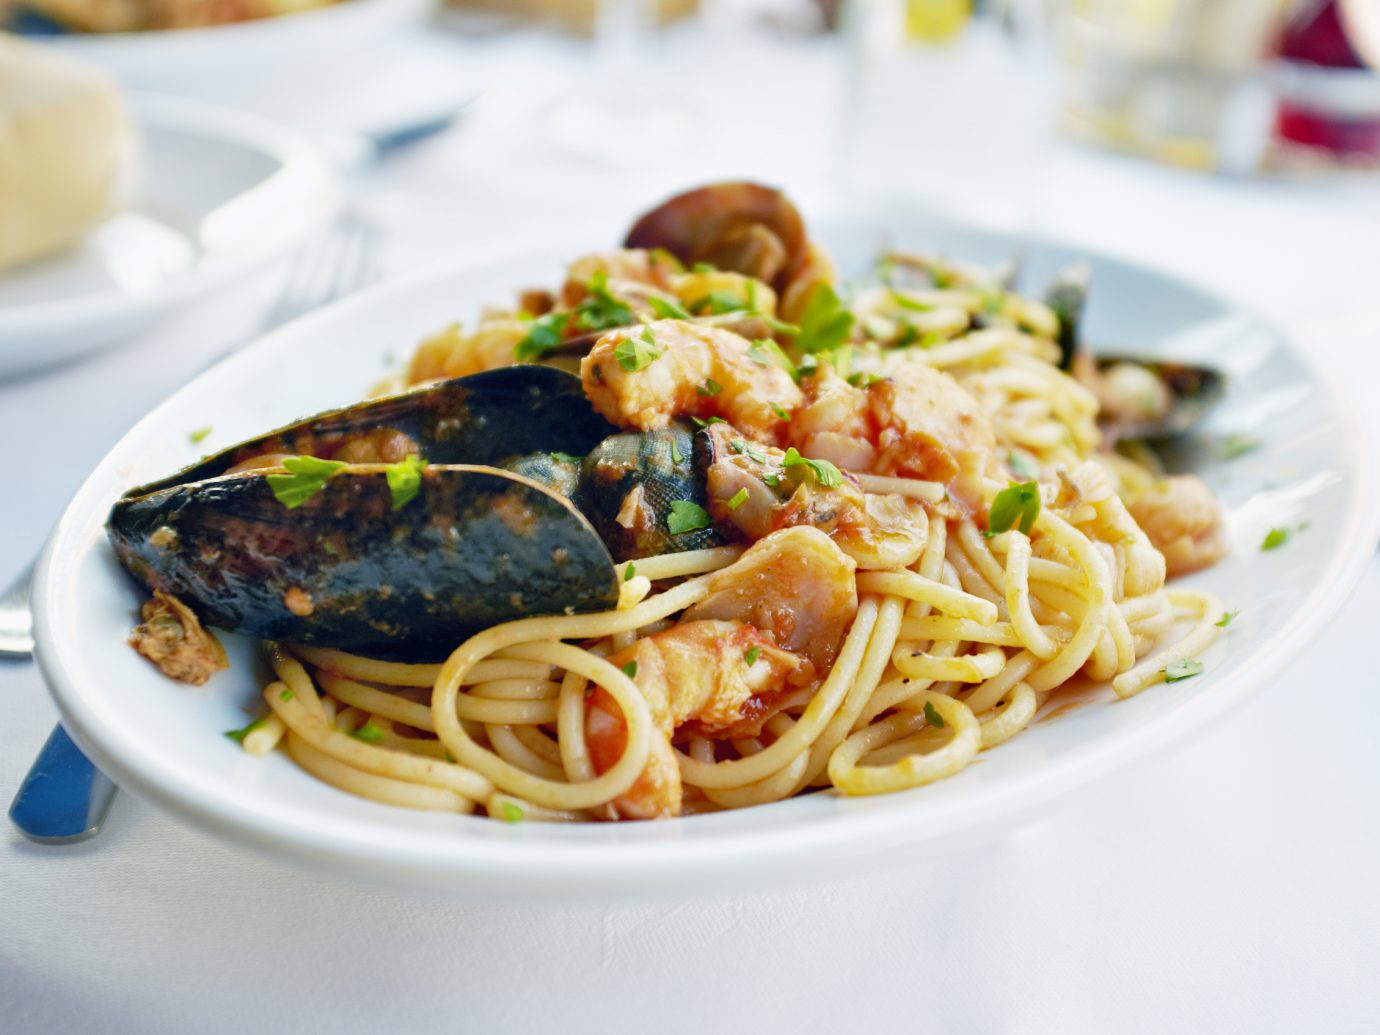 Fresh Seafood pasta - Spaghetti, clams, shrimps and squid, served in a restaurant in Italy.